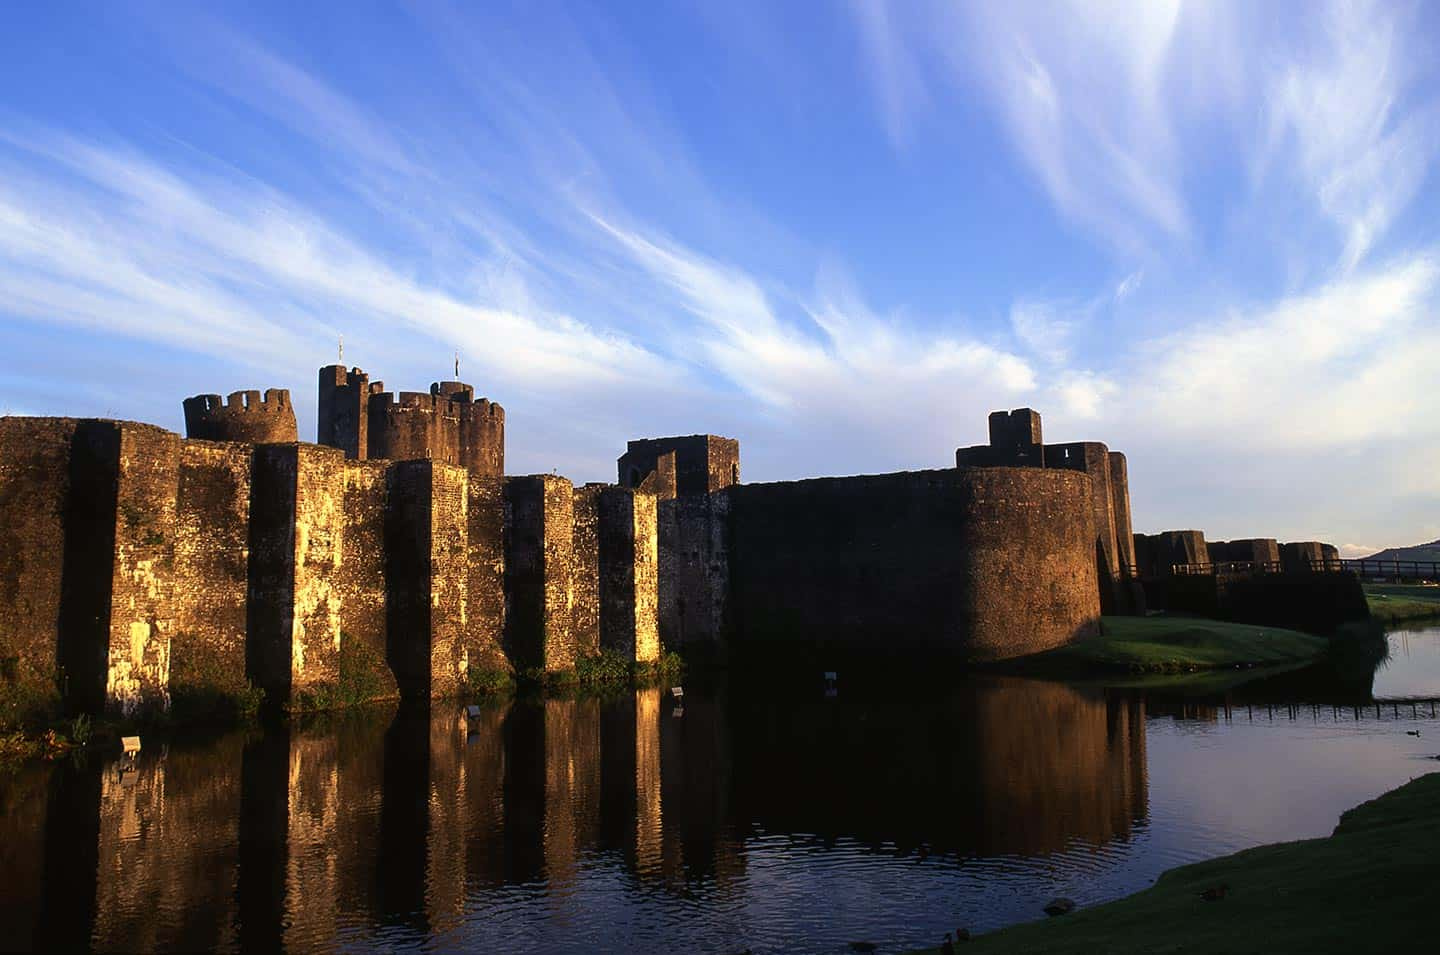 Image of Caerphilly Castle in South Wales